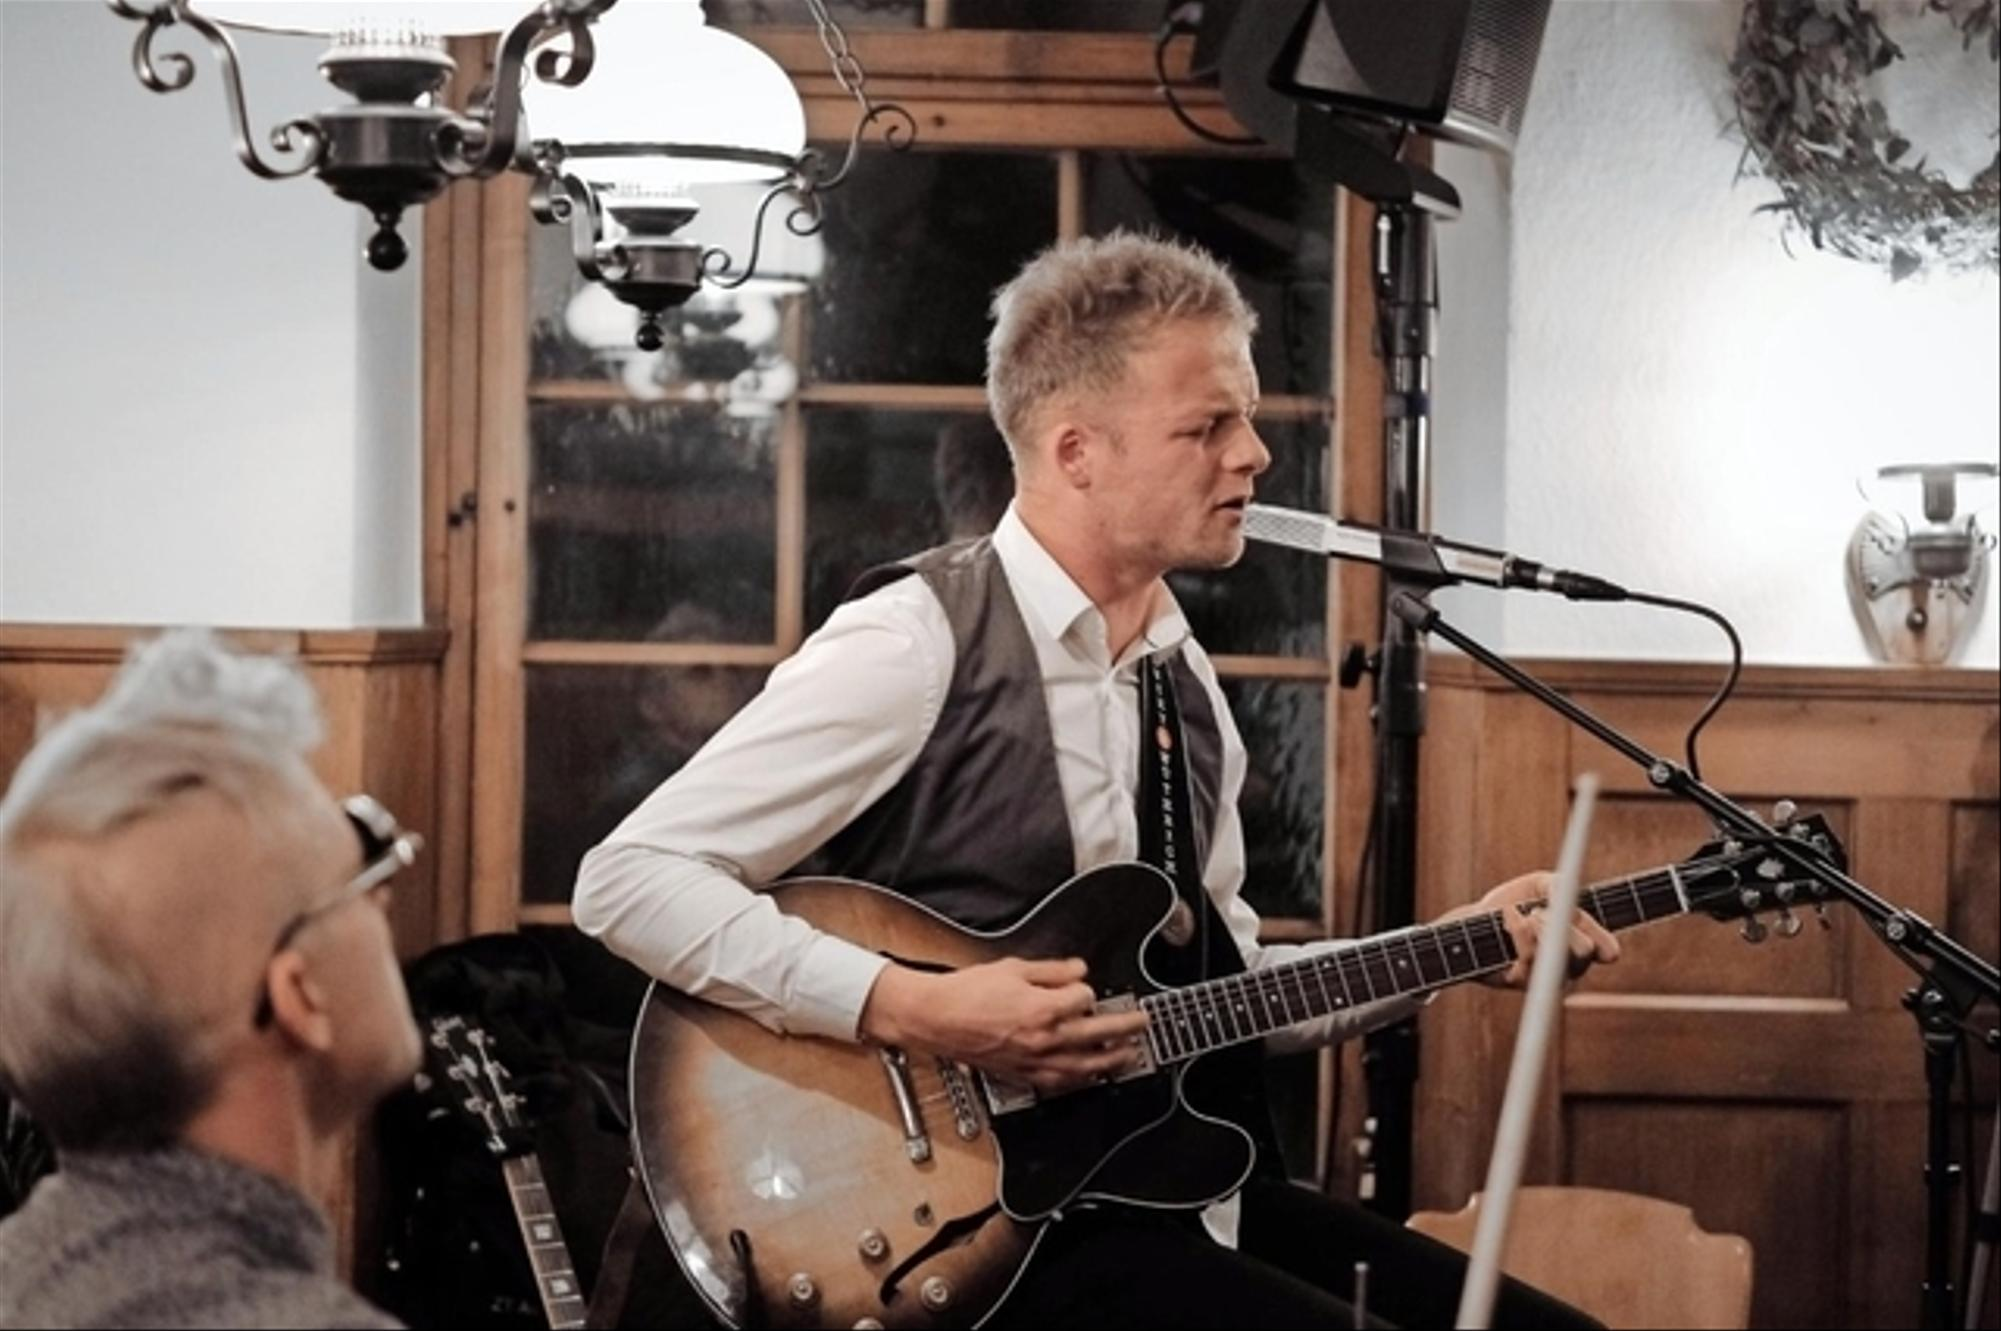 LIVE MUSIC SESSION - LUCKY WÜTHRICH DUO